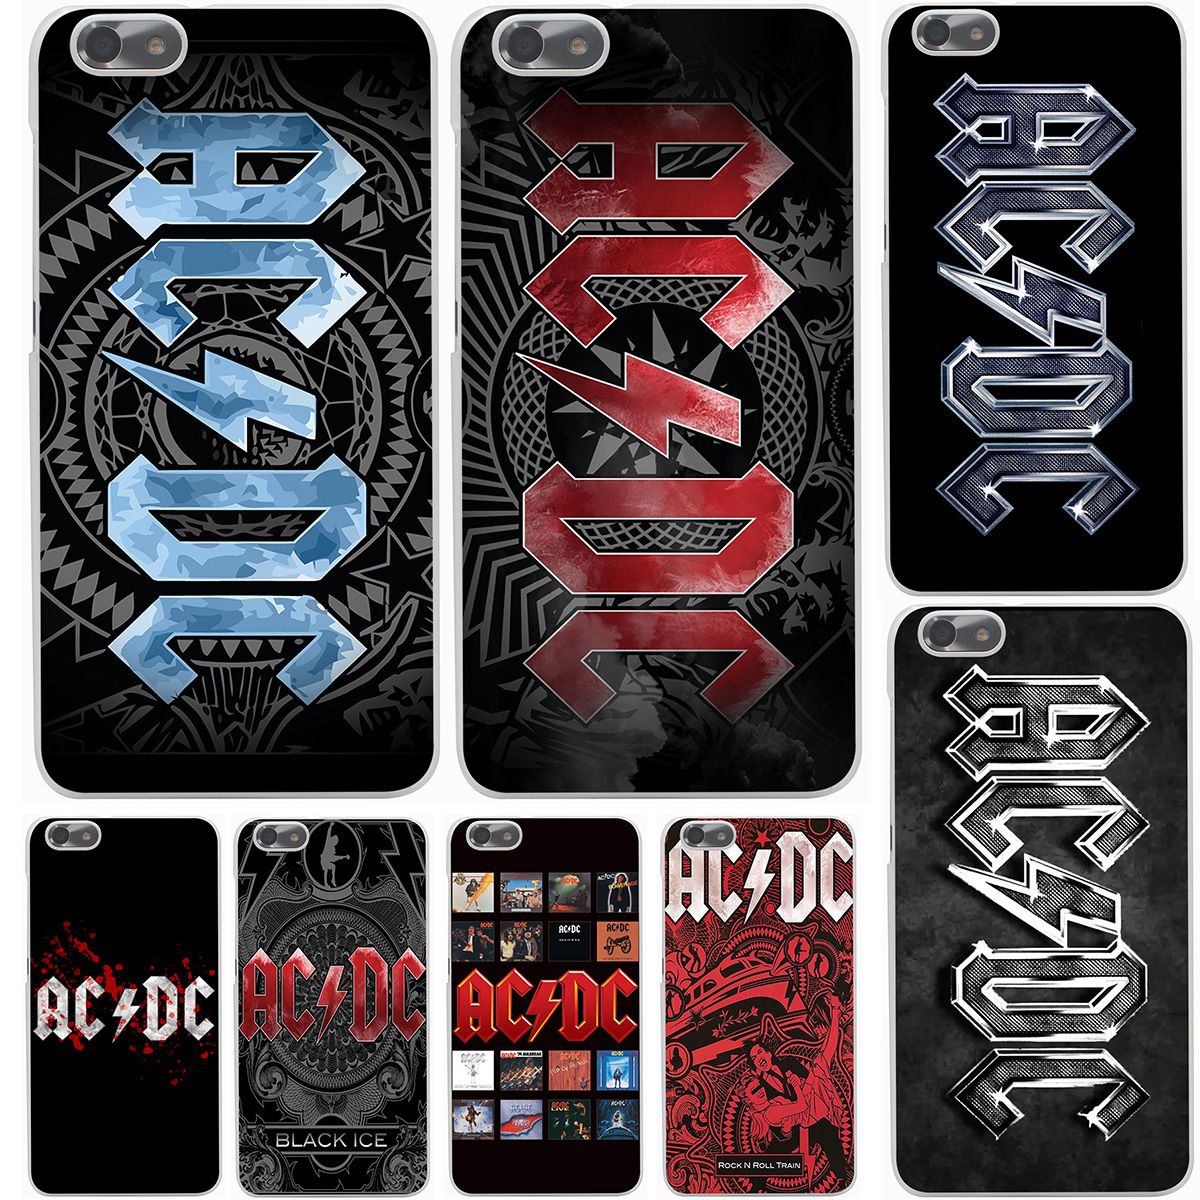 coque acdc huawei p8 lite 2017